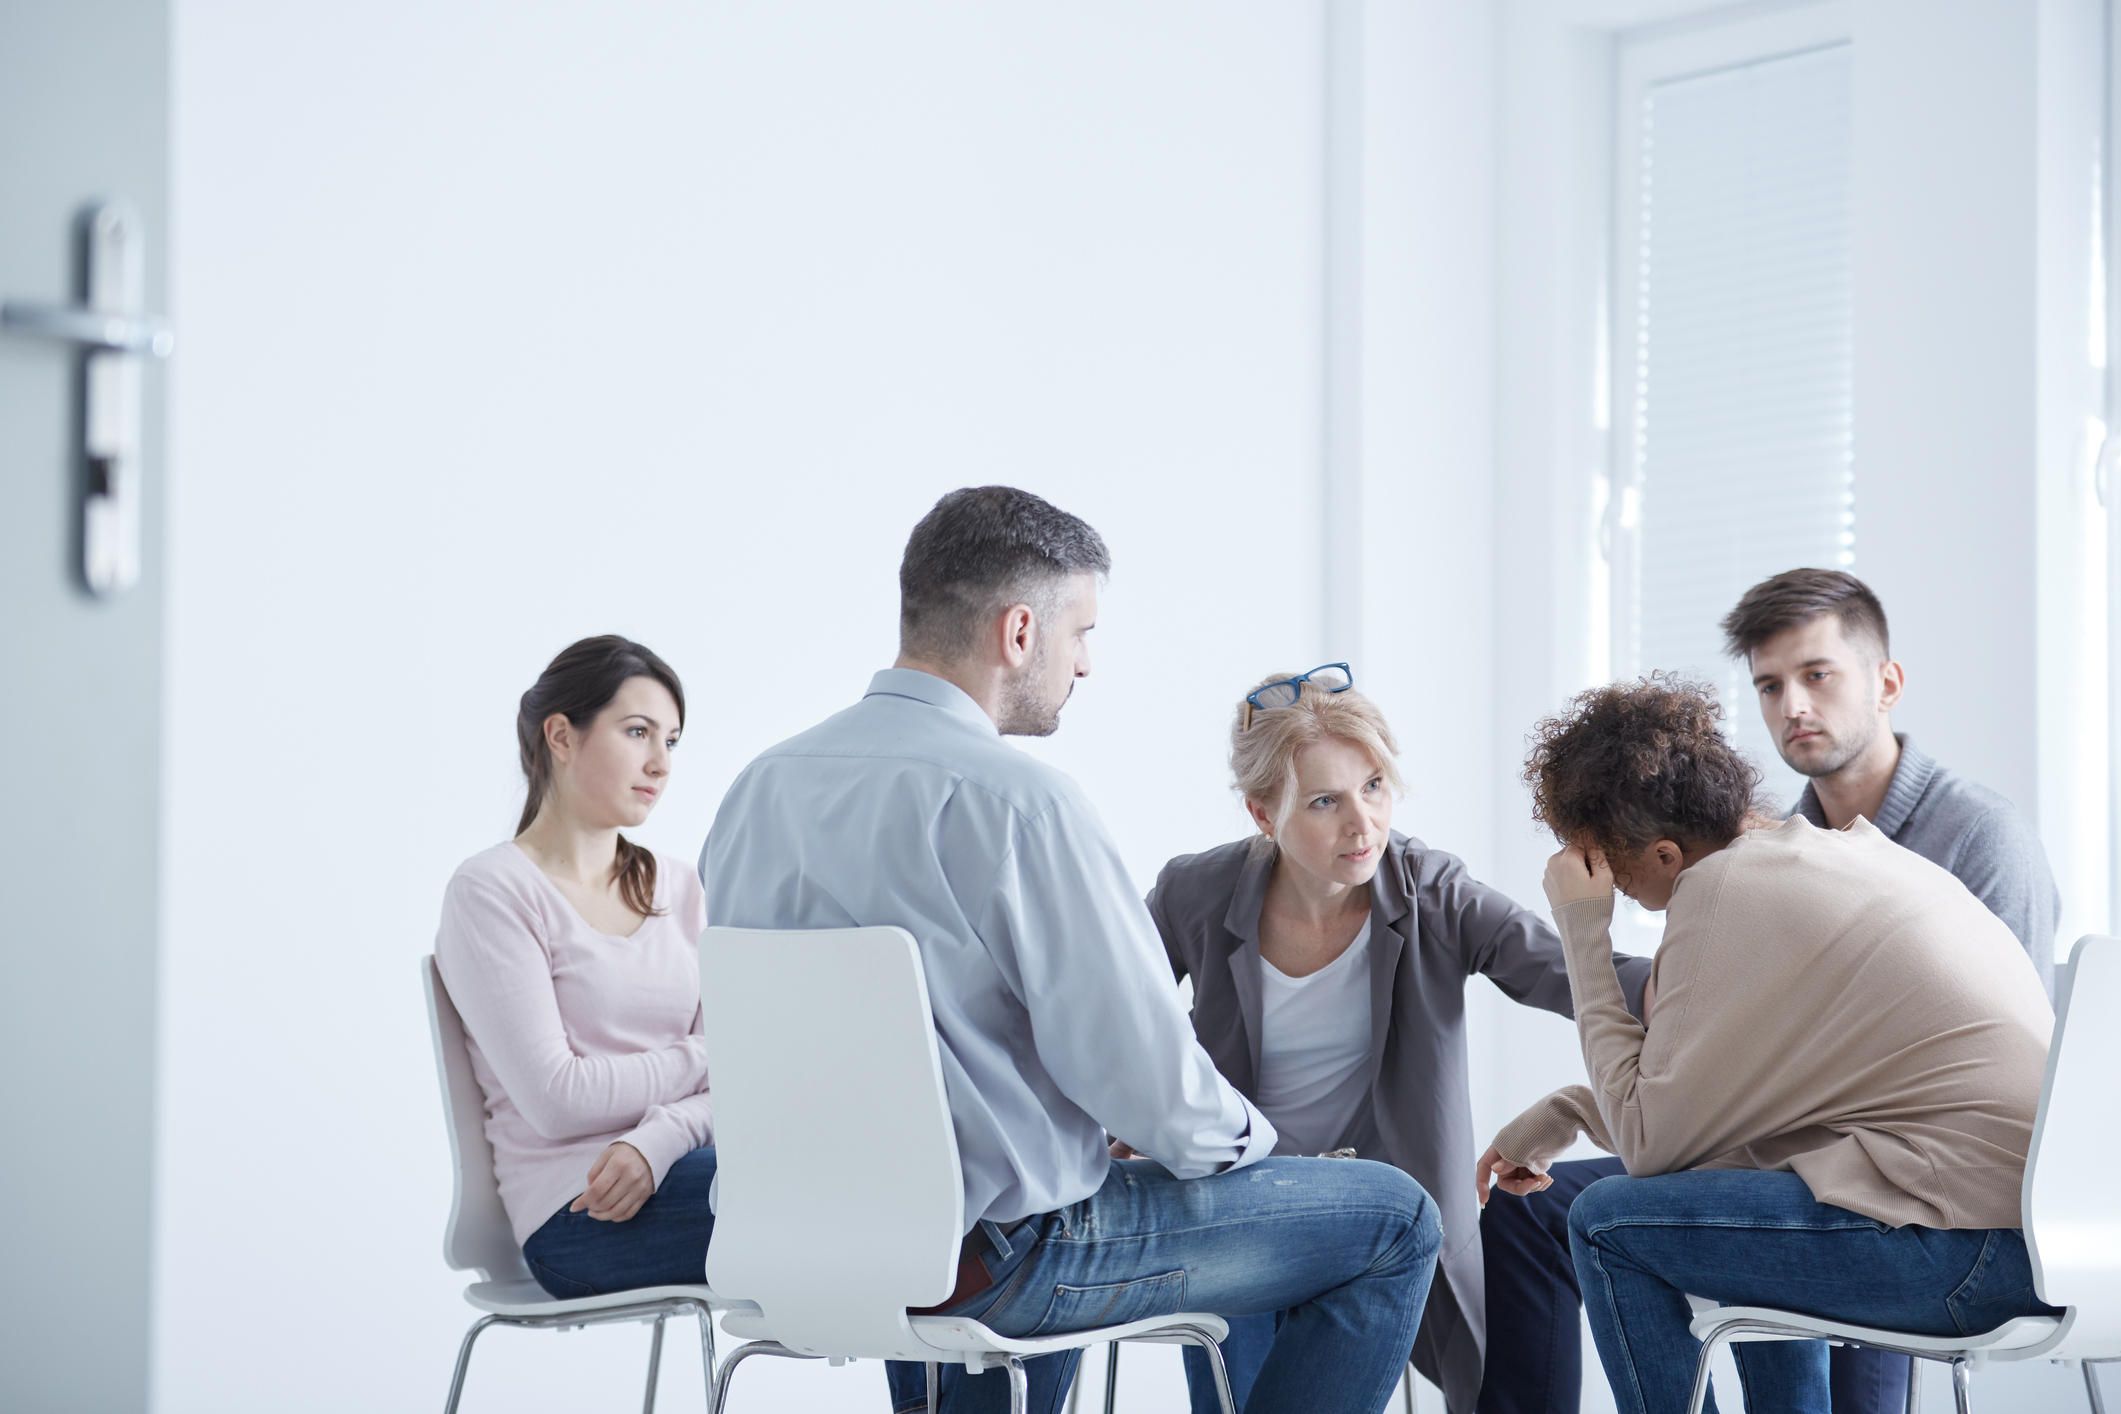 """Group Supervision - Group Supervision can be defined as """"Communication between two or more staff, intended to enhance performance and effectiveness in carrying out the requirements of their post."""" A supervision group is a chance to reflect with others in a confidential space.The purpose of the group is not to tell other people what to do, nor is it group therapy, but can become a really supportive and healthy place for professionals and/or staff members to offload, create a shared understanding and enhance emotional wellbeing."""